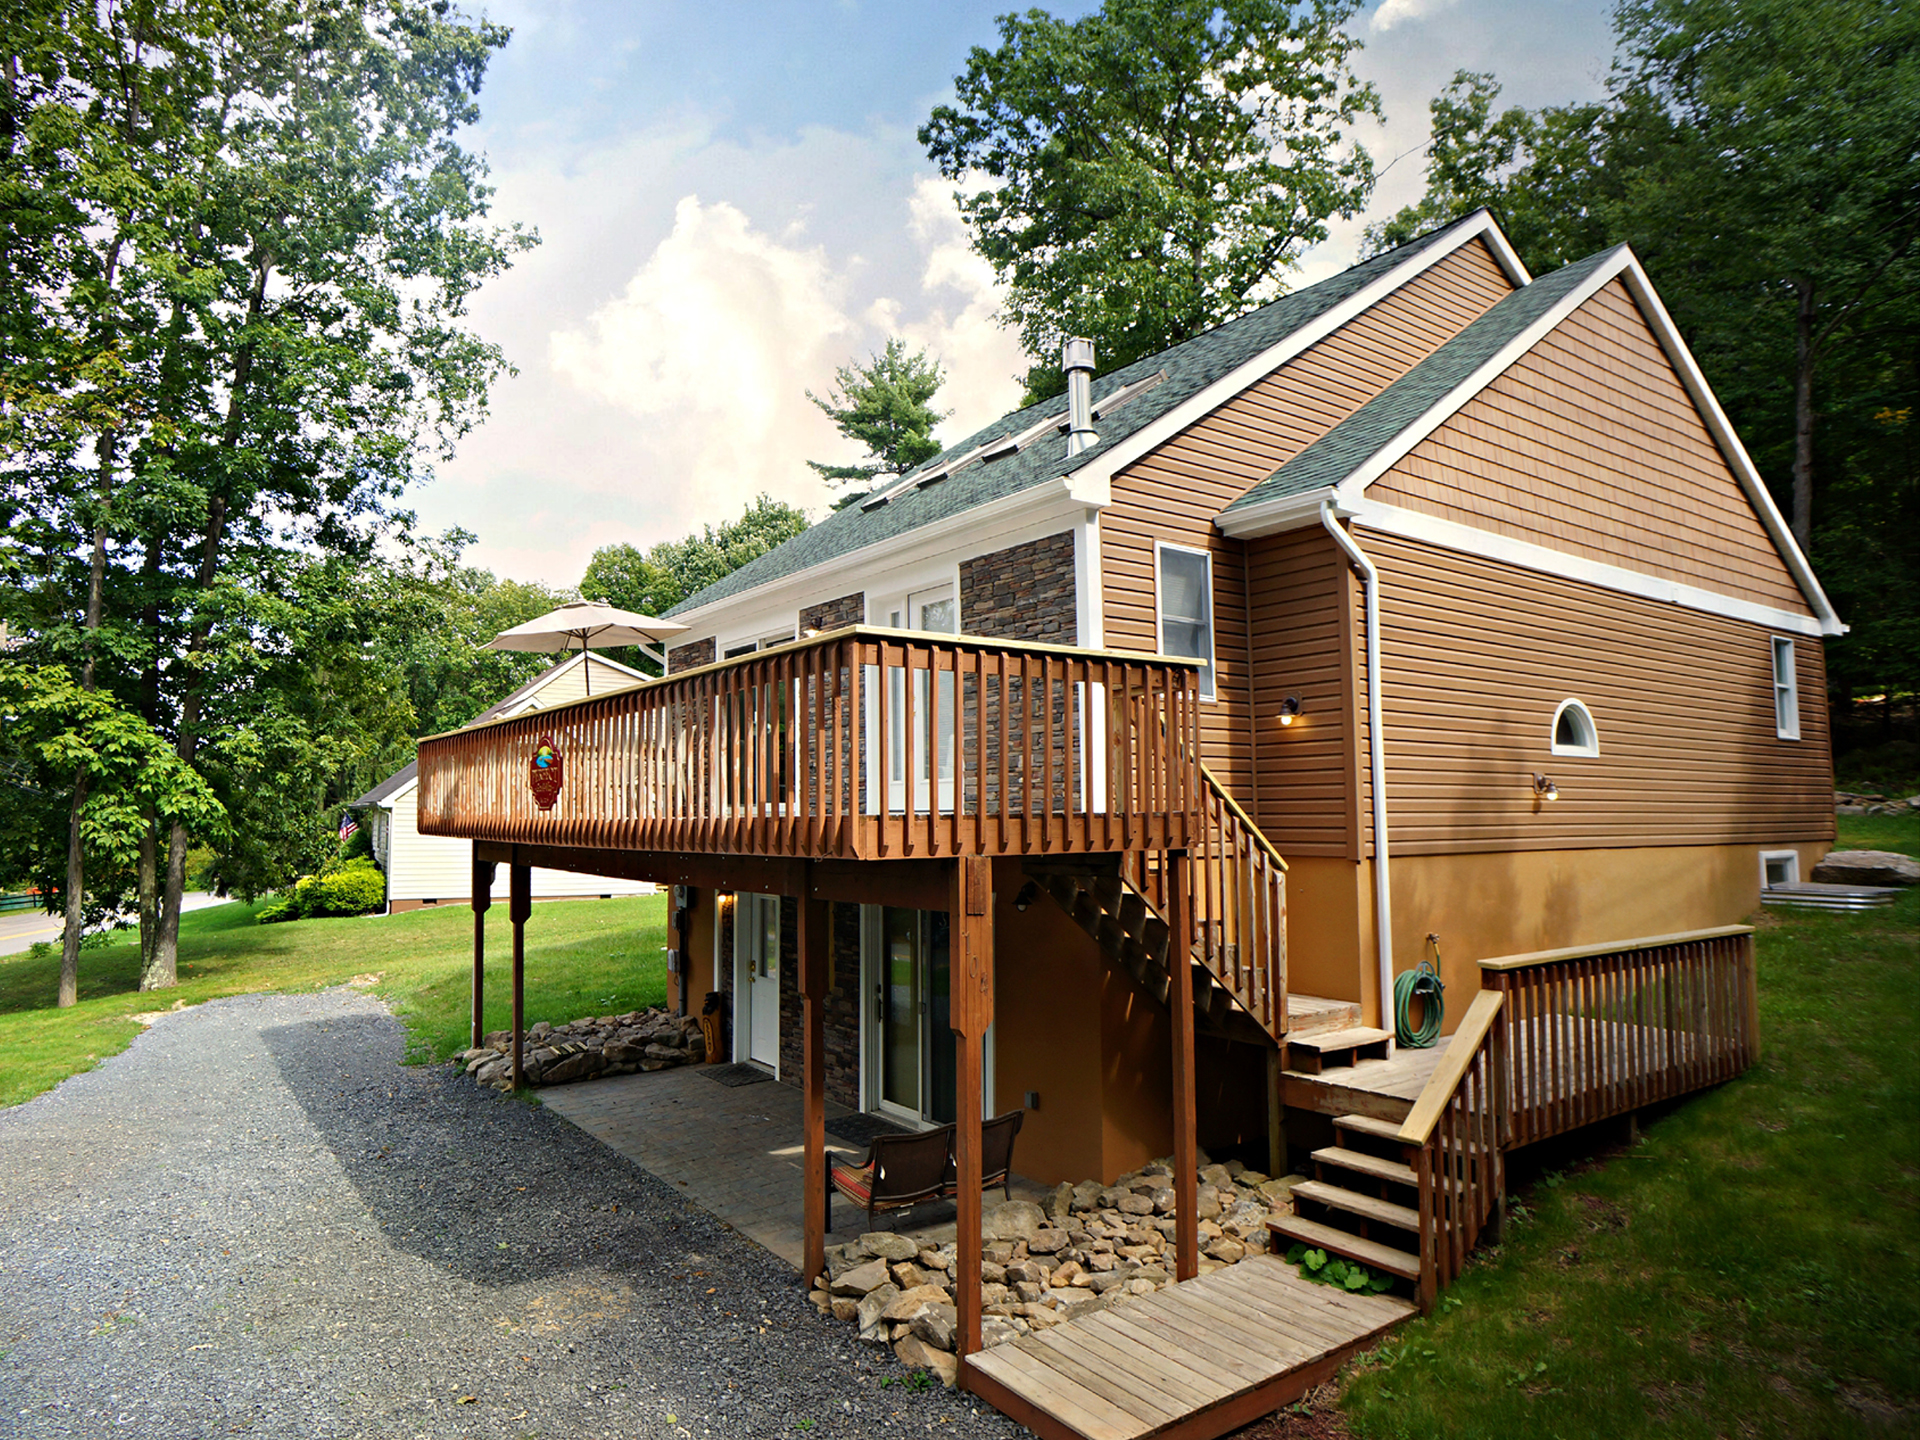 our offers blue moon cabins maryland best pinterest here mini creek lake deep view rising spots vacation images cabin samsonkg on in the rentals